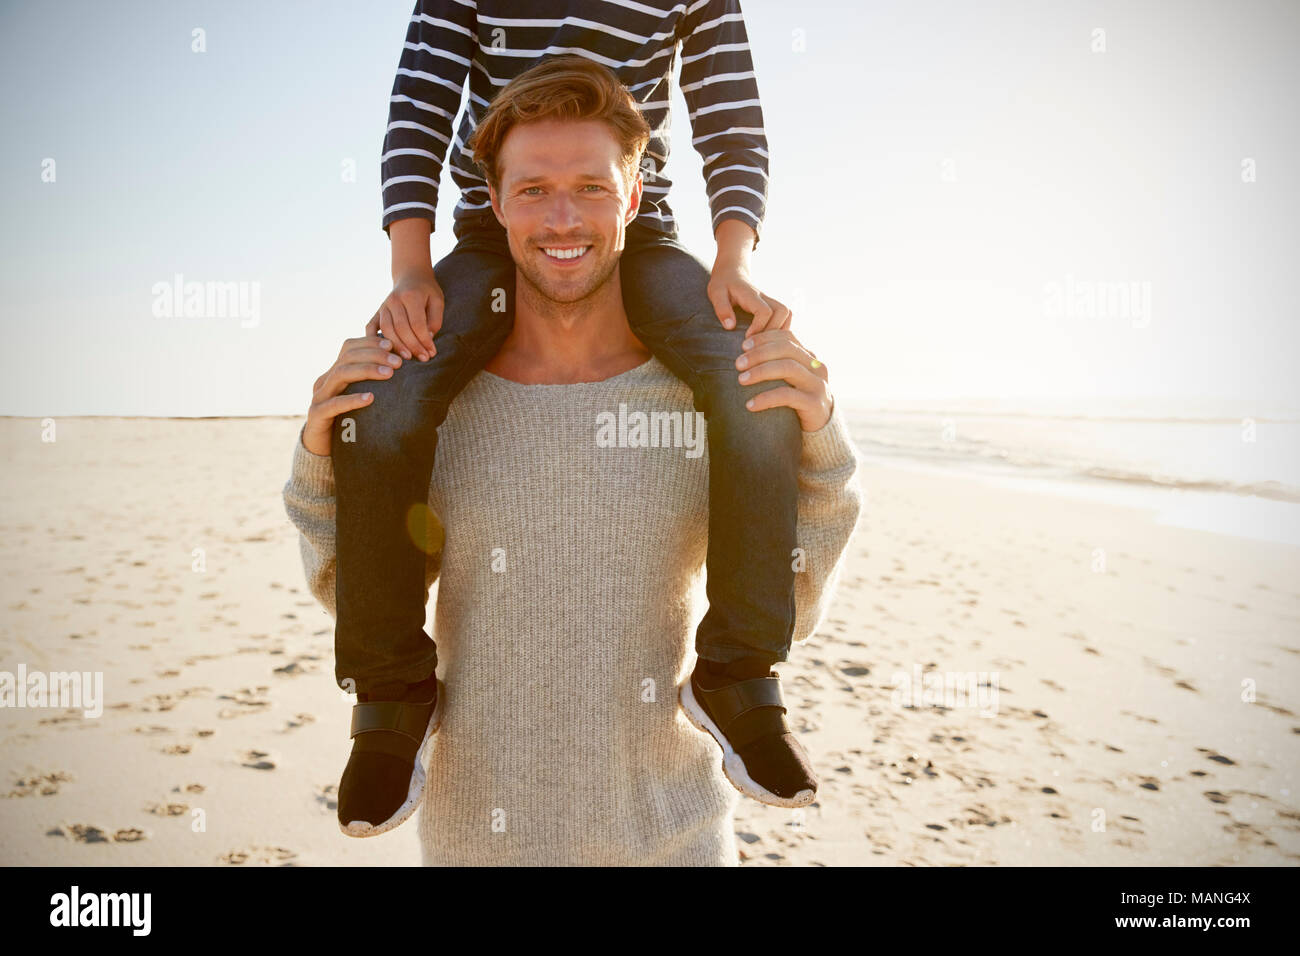 Detail Of Father Carrying Son On Shoulders On Winter Beach - Stock Image